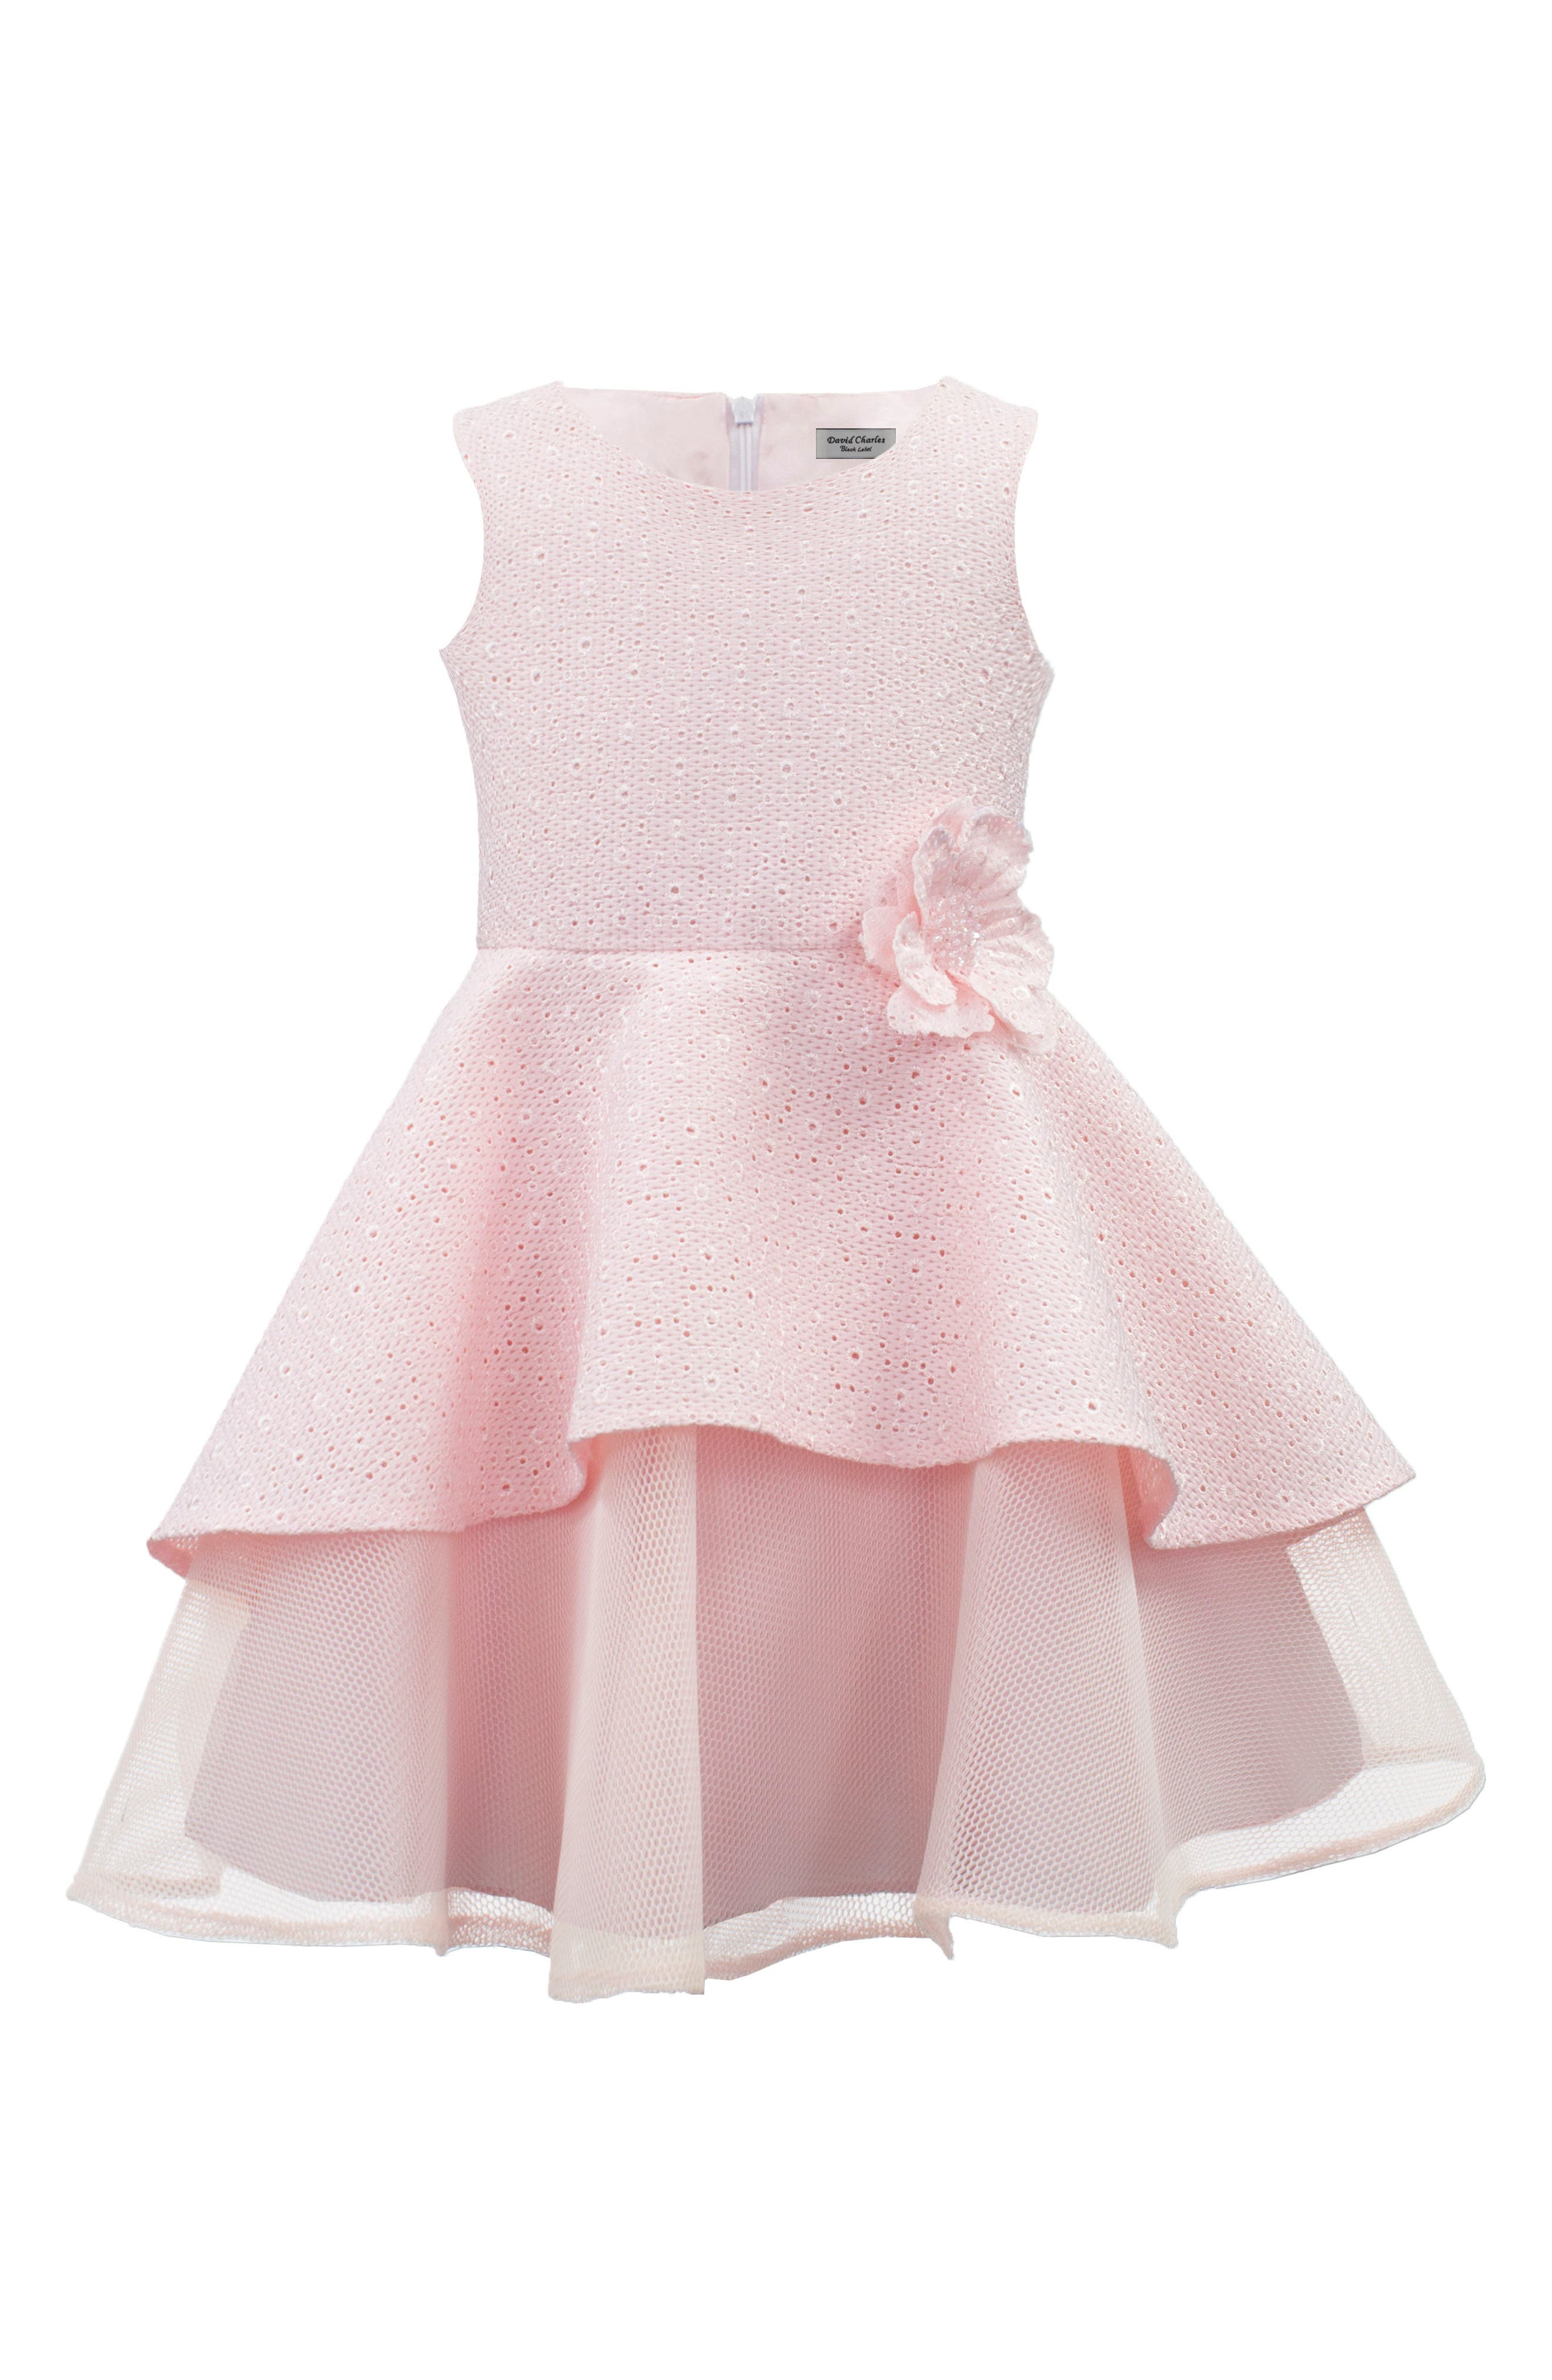 Broderie Anglaise Techno Mesh Dress,                             Main thumbnail 1, color,                             Pink